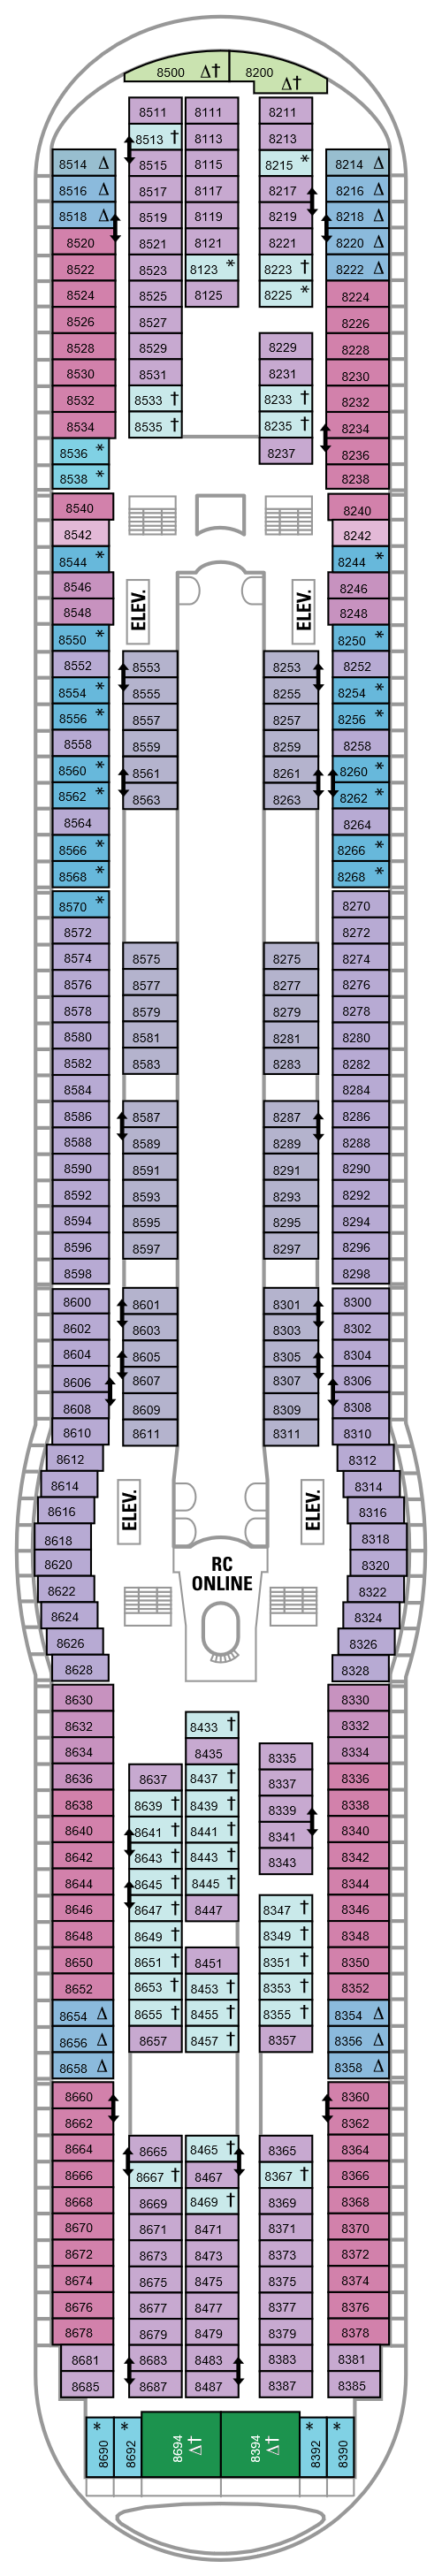 Voyager Of The Seas Deck 8 layout